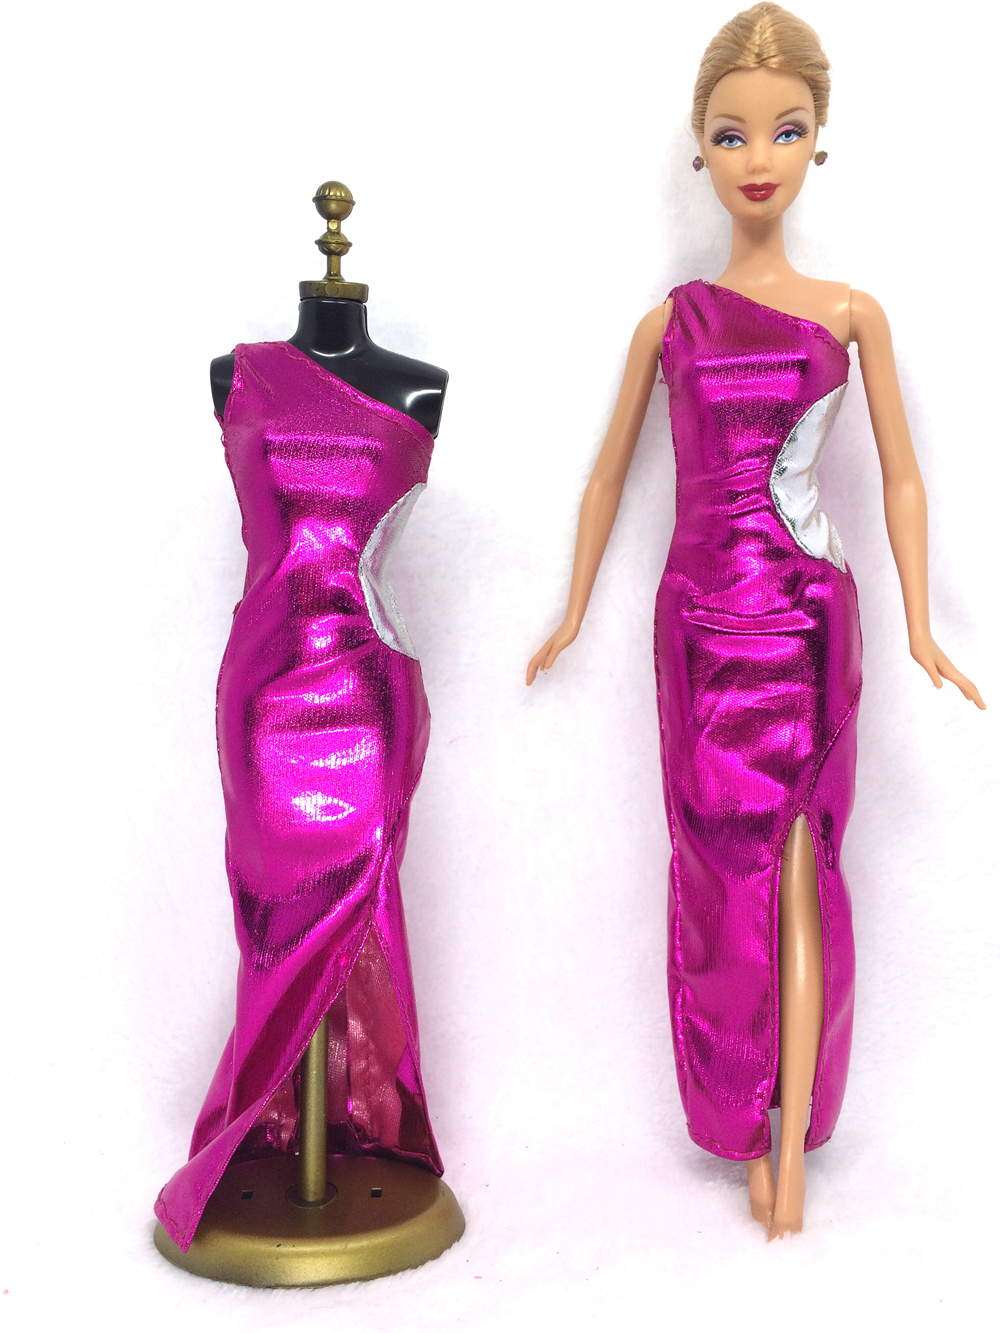 NK 2018 Newest Doll Dress Beautiful Handmade Party ClothesTop Fashion Dress For Barbie Noble Doll Best Child Girls'Gift 043A